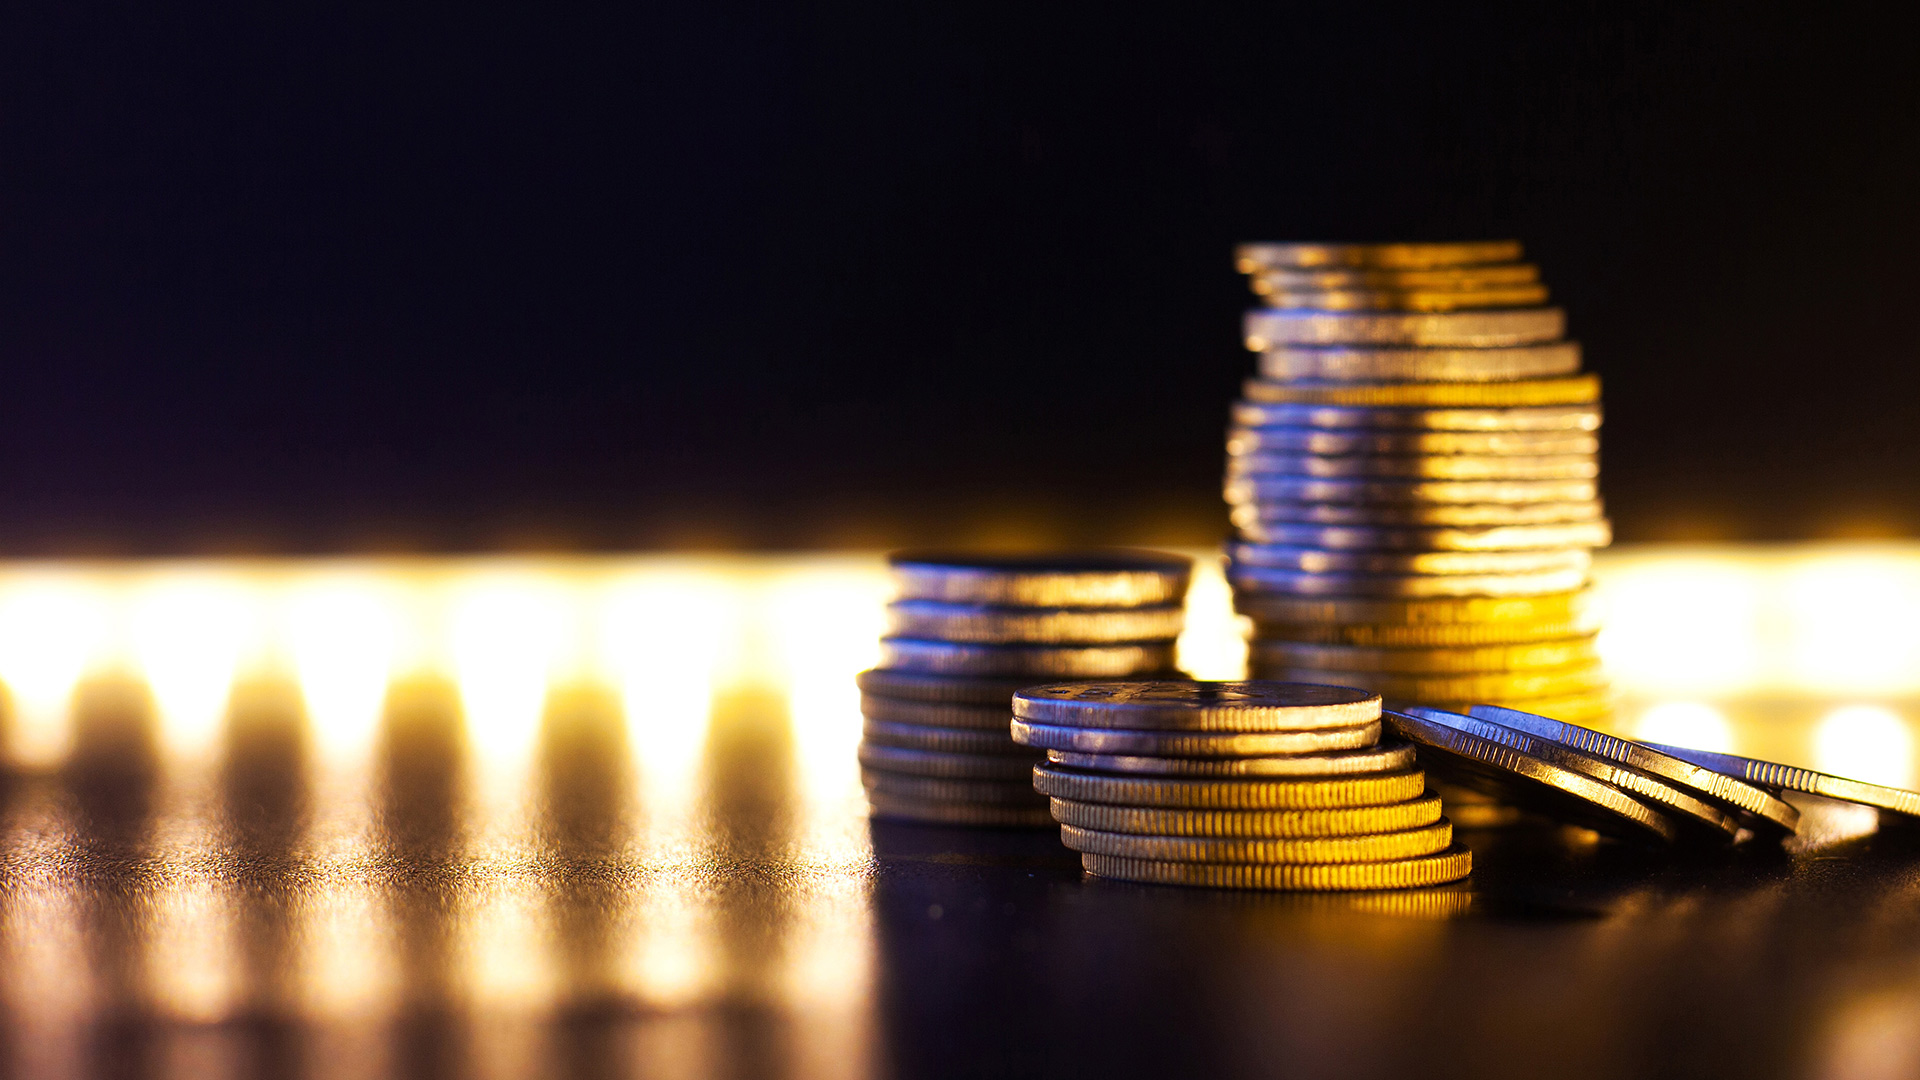 Stacked coins with bright lights